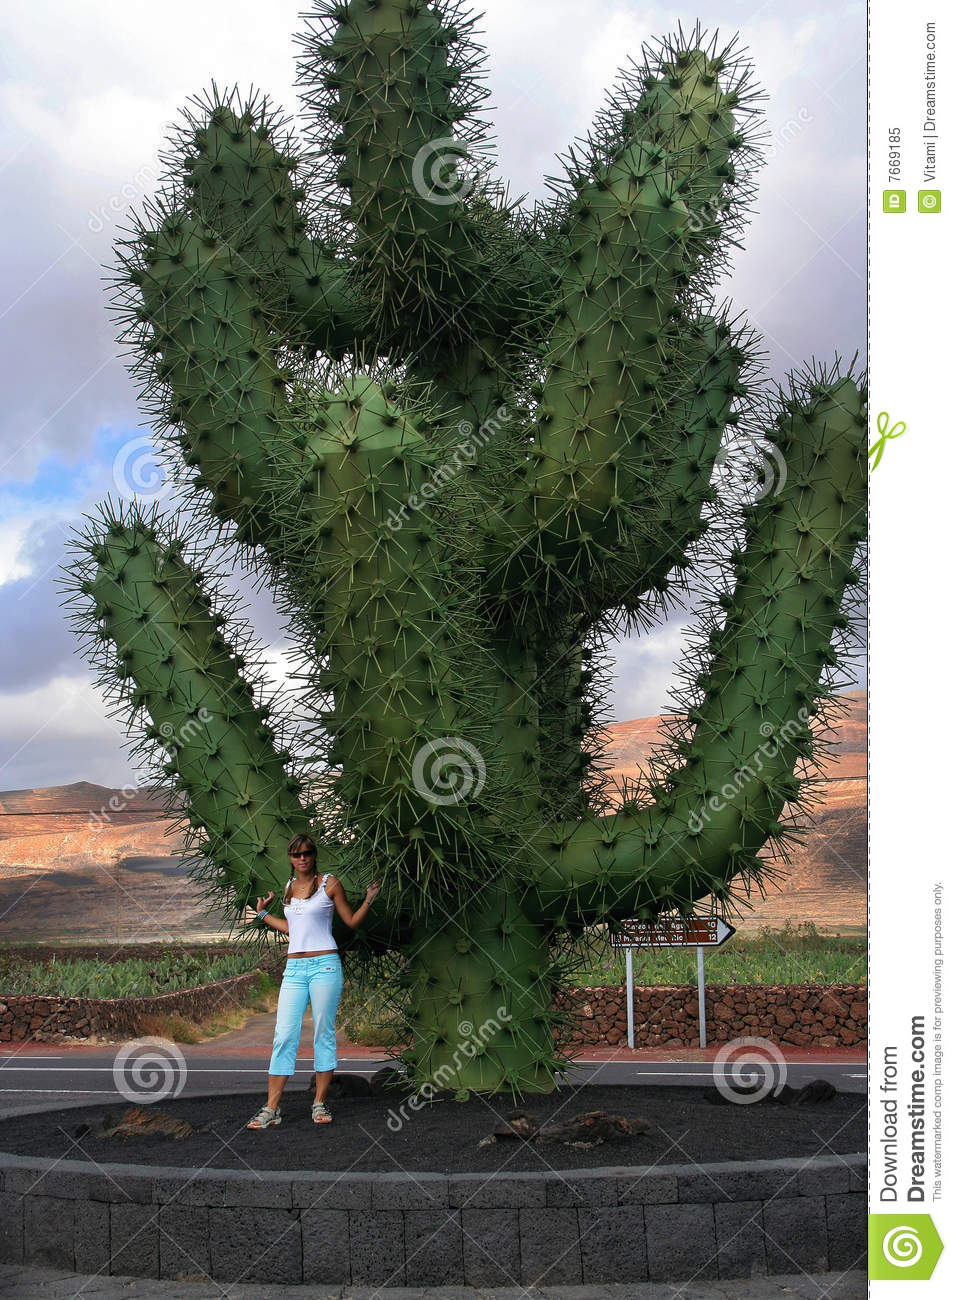 Spain lanzarote jardin de cactus stock image image of tourist travel 7669185 - Jardin de cactus ...